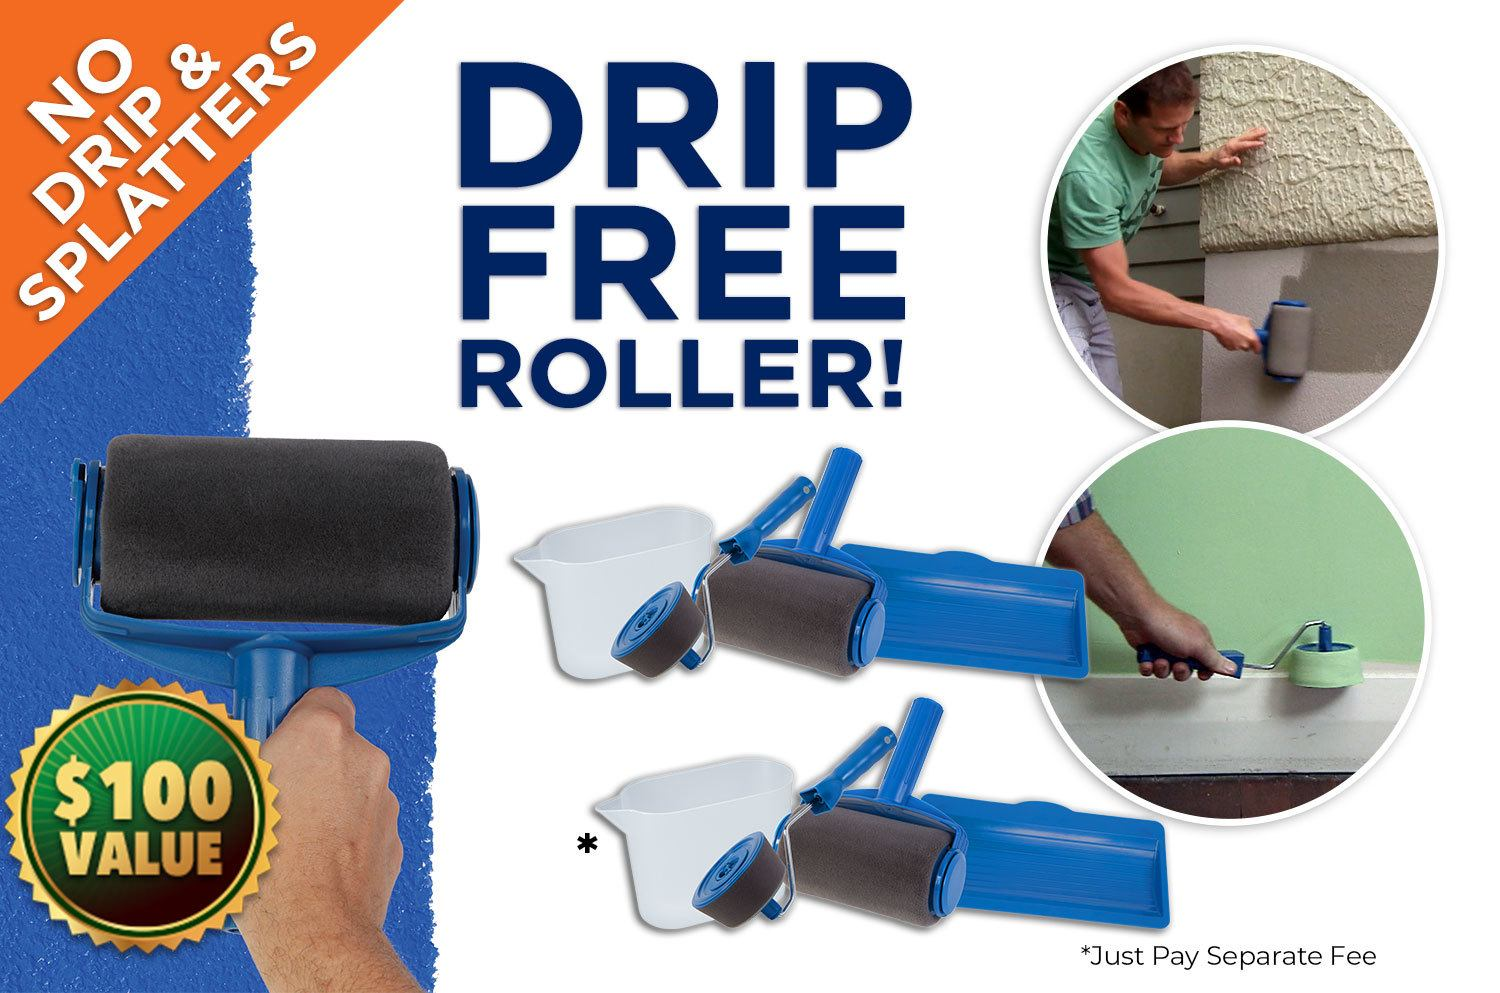 Paint Runner Pro Offer with Free Roller + p&h